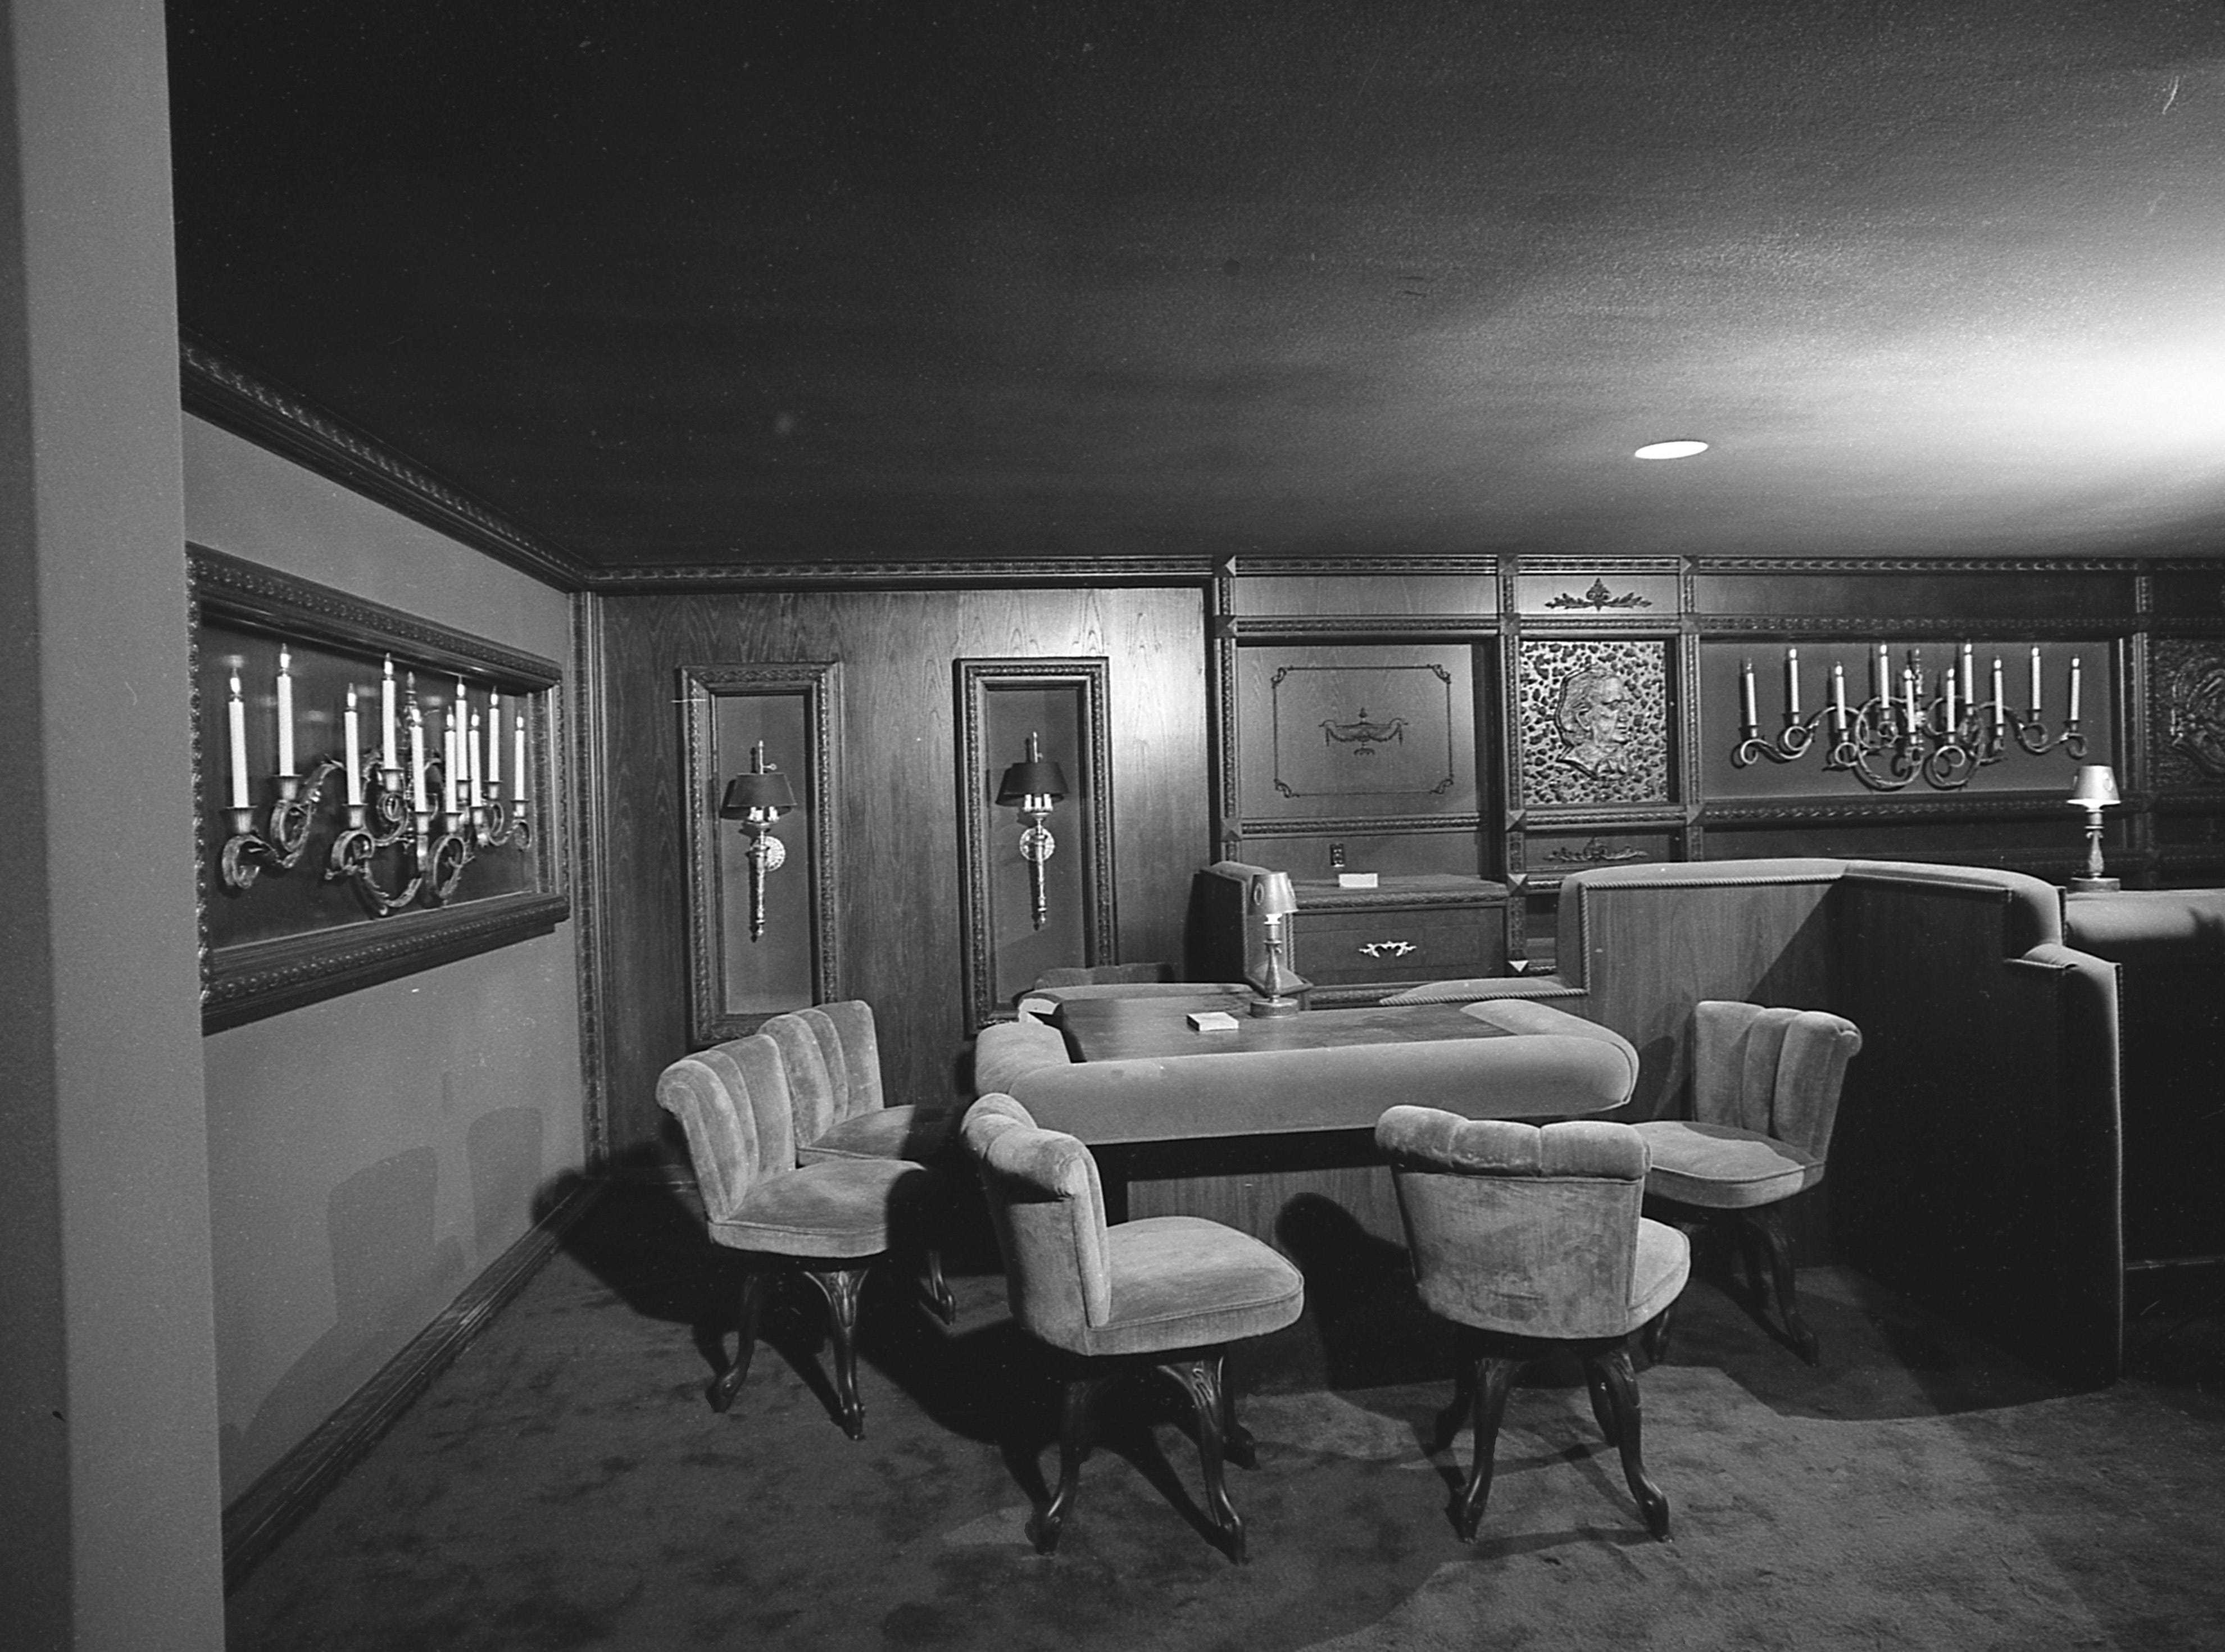 """35mm film negative of the new Milwaukee Performing Arts Center (now known as the Marcus Center for the Performing Arts) or PAC at 929 N. Water St. Construction began on June 27, 1966. This photo shows the interior of the restaurant,  the Velvet Chair.   This photo was in the Sept. 14 edition of the Journal with the caption """"Mahogany paneling and green velvet turned the brick of a rathskeller into the Velvet Chair."""" Date is  9/14/1969   building, music, performance, stage, theater, Uihlein Hall, Todd Wehr hall, Peck Pavilion. Neg. #69592"""